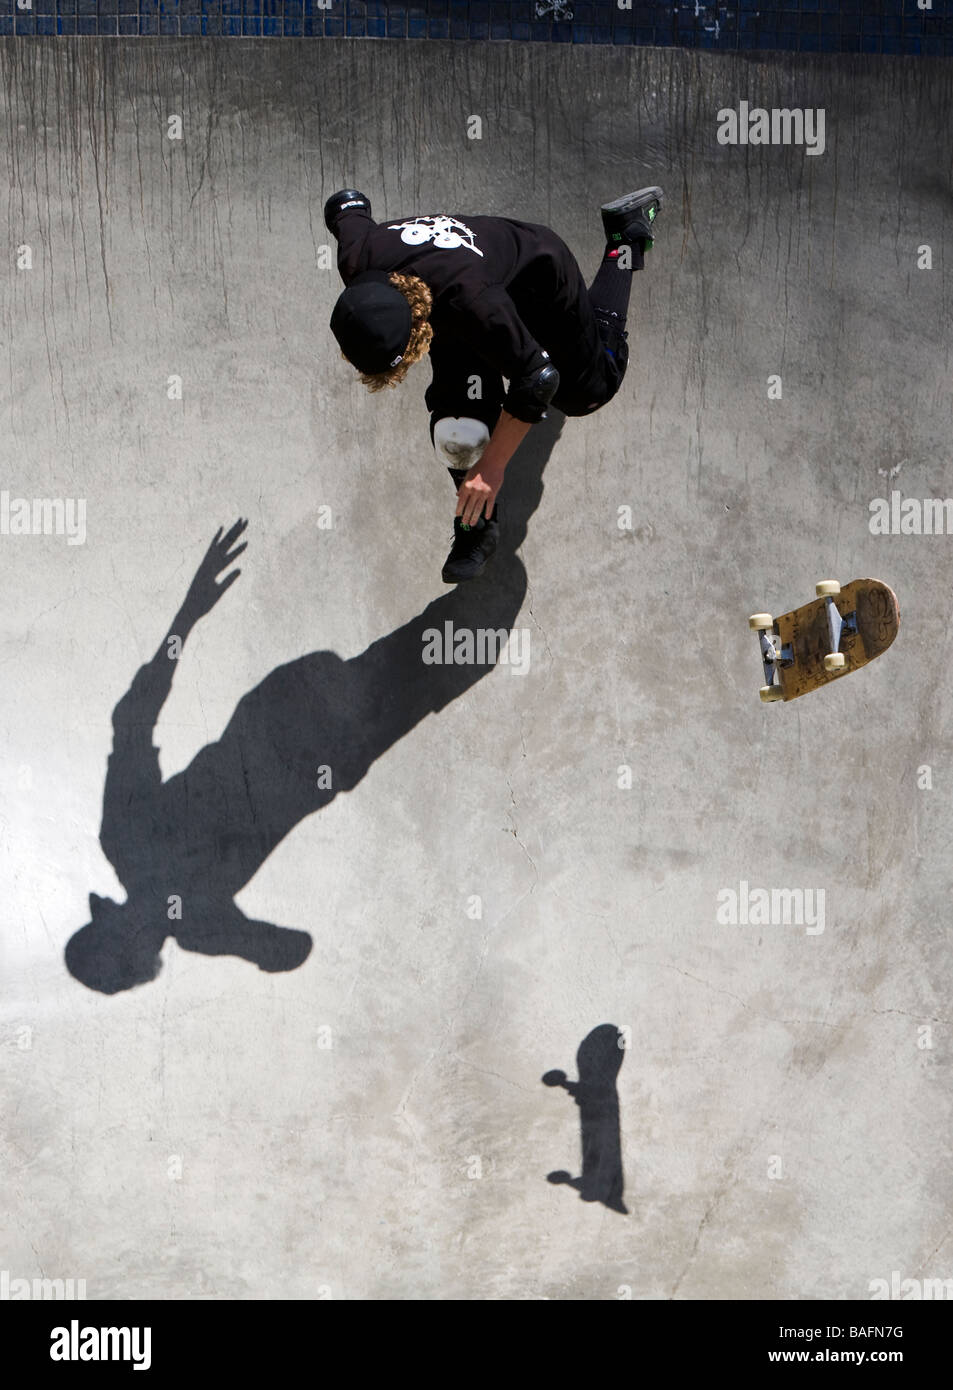 Planche faisant des tours Culver City Skateboard Park Culver City Los Angeles County California United States of Photo Stock